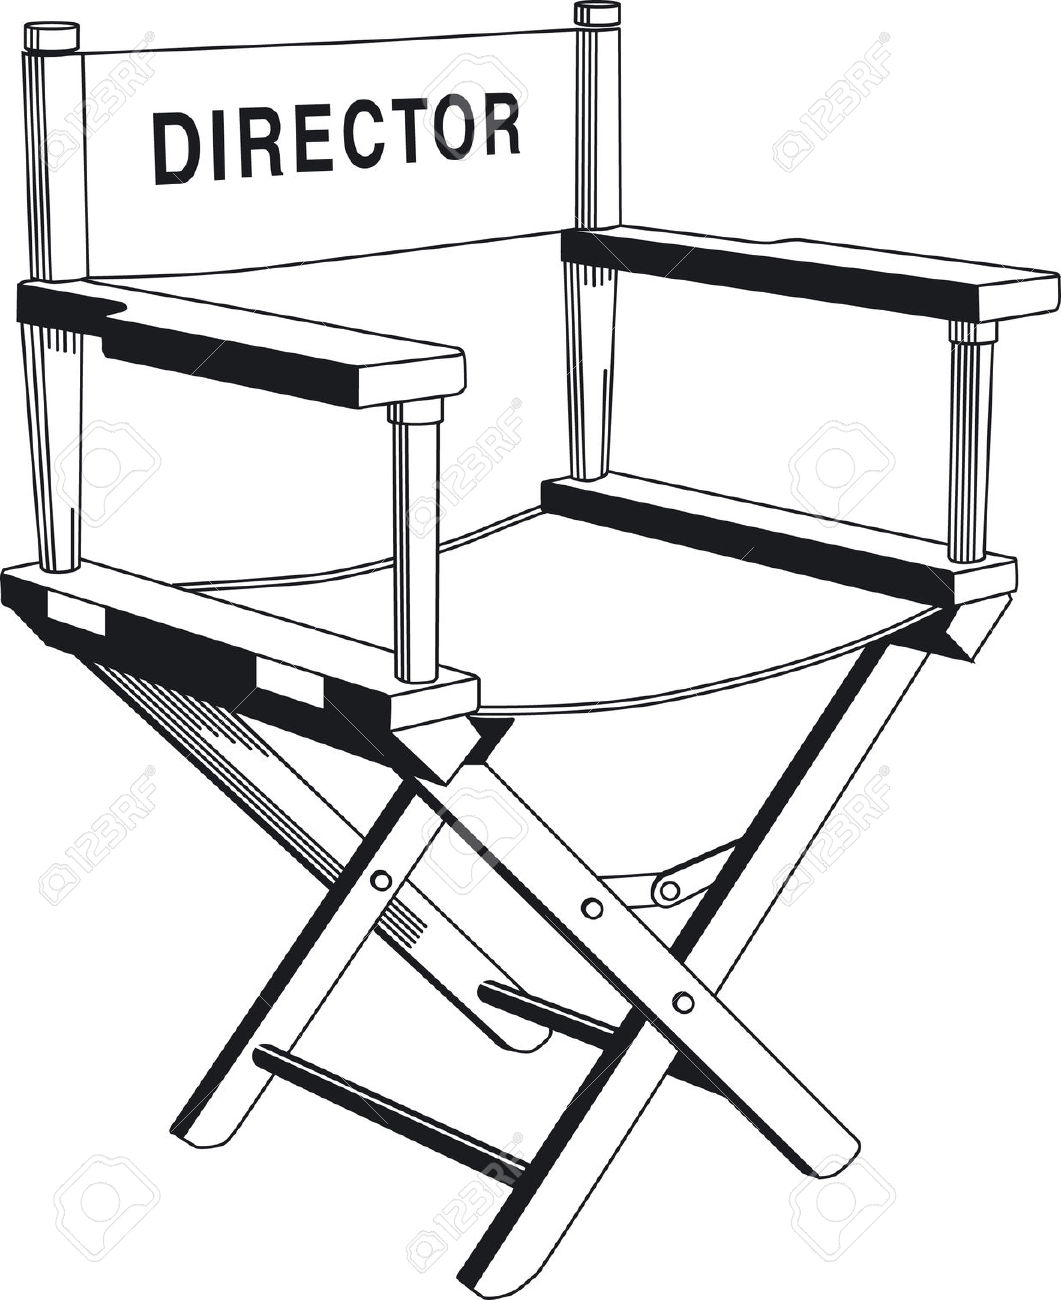 director: direction chair | Clipart Panda - Free Clipart Images